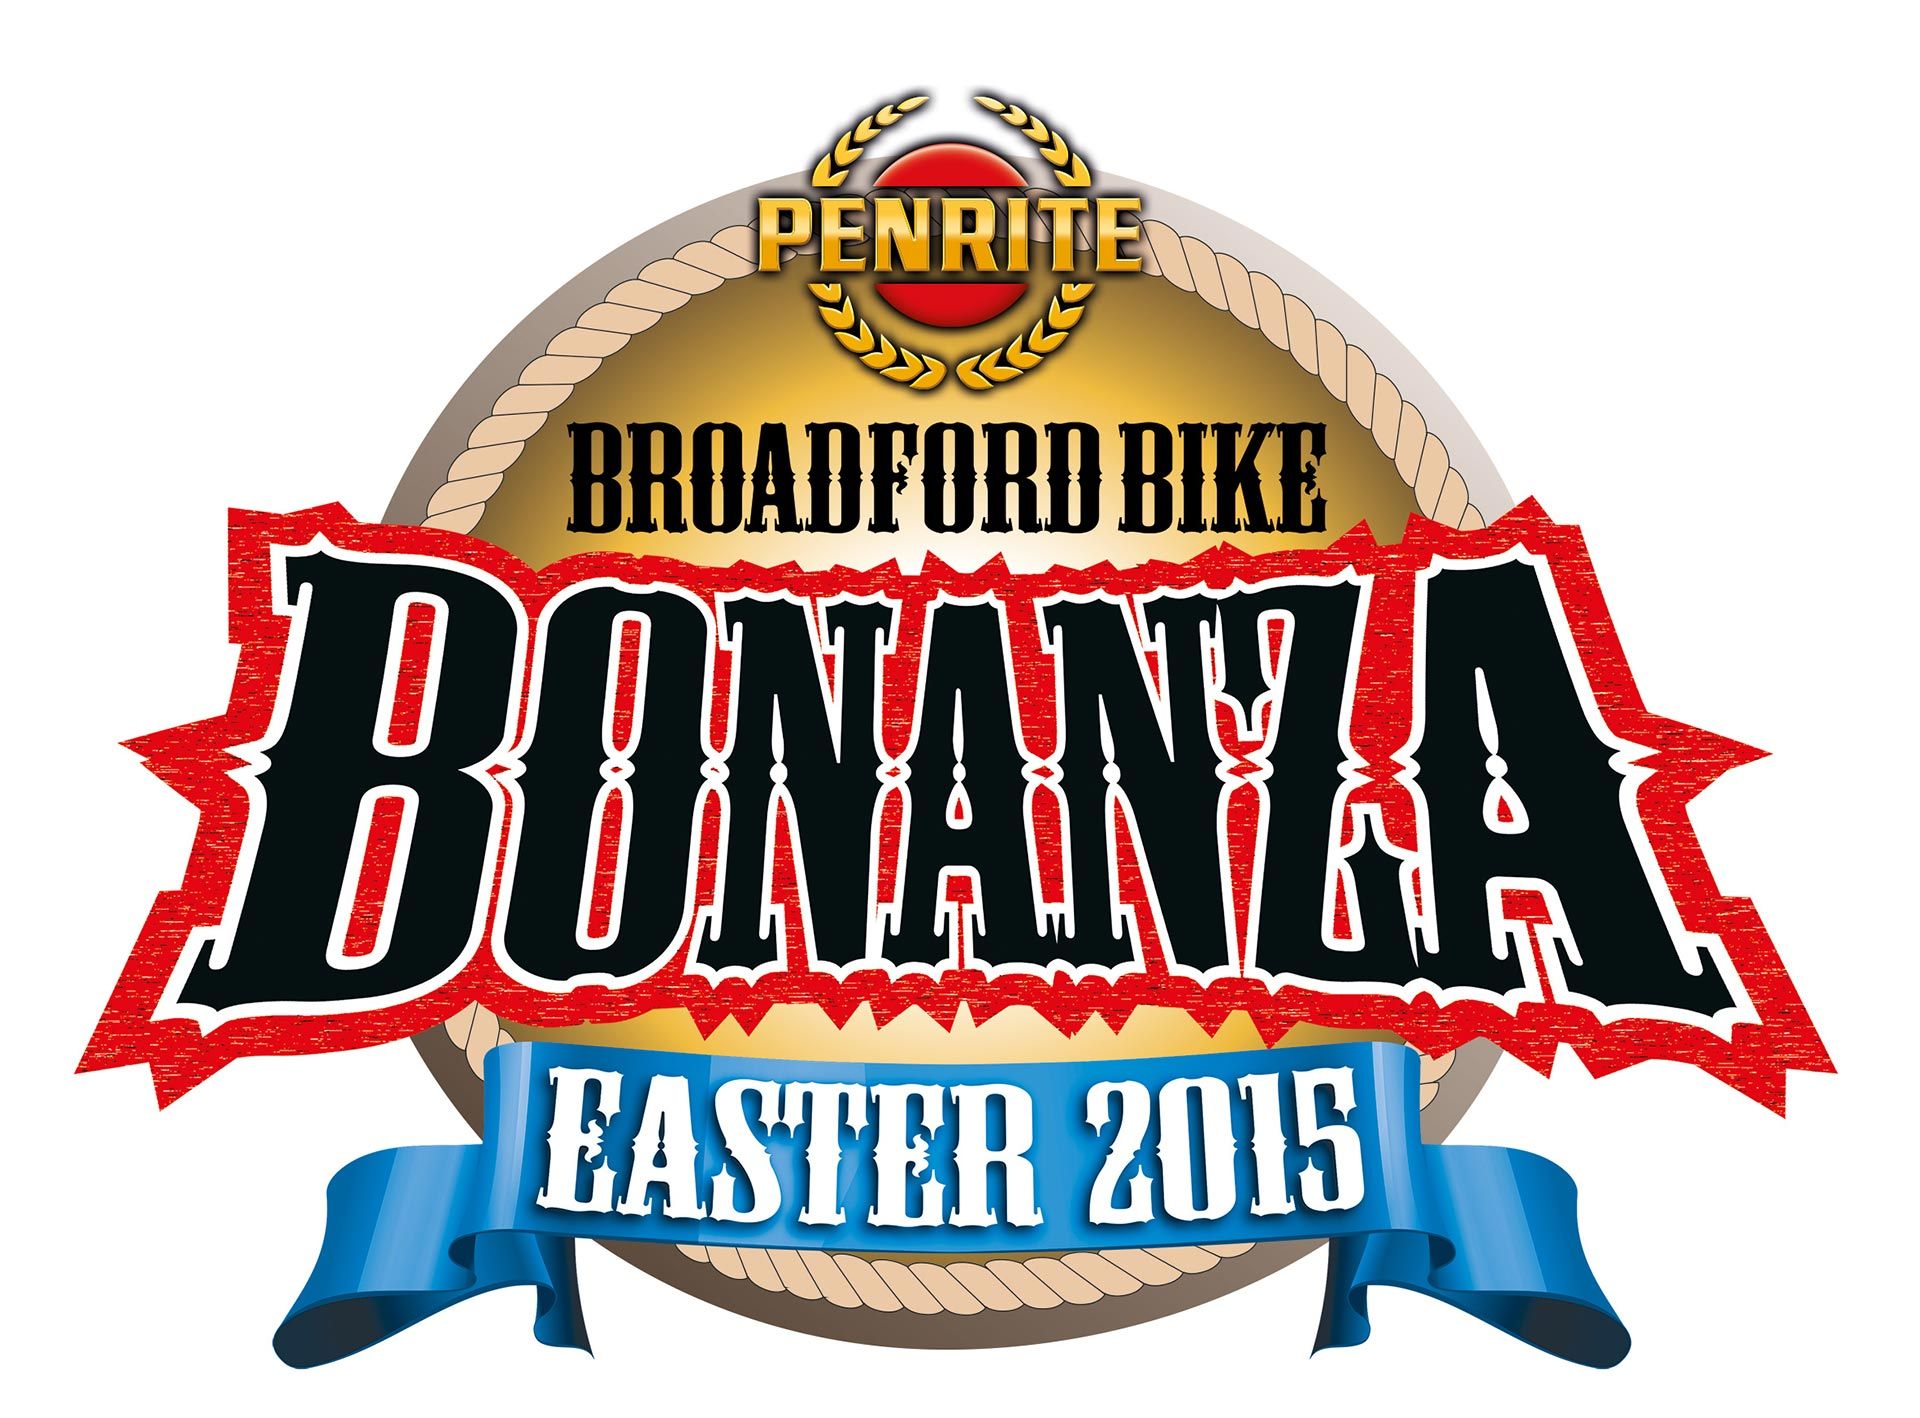 Broadford Bike Bonanza 2015